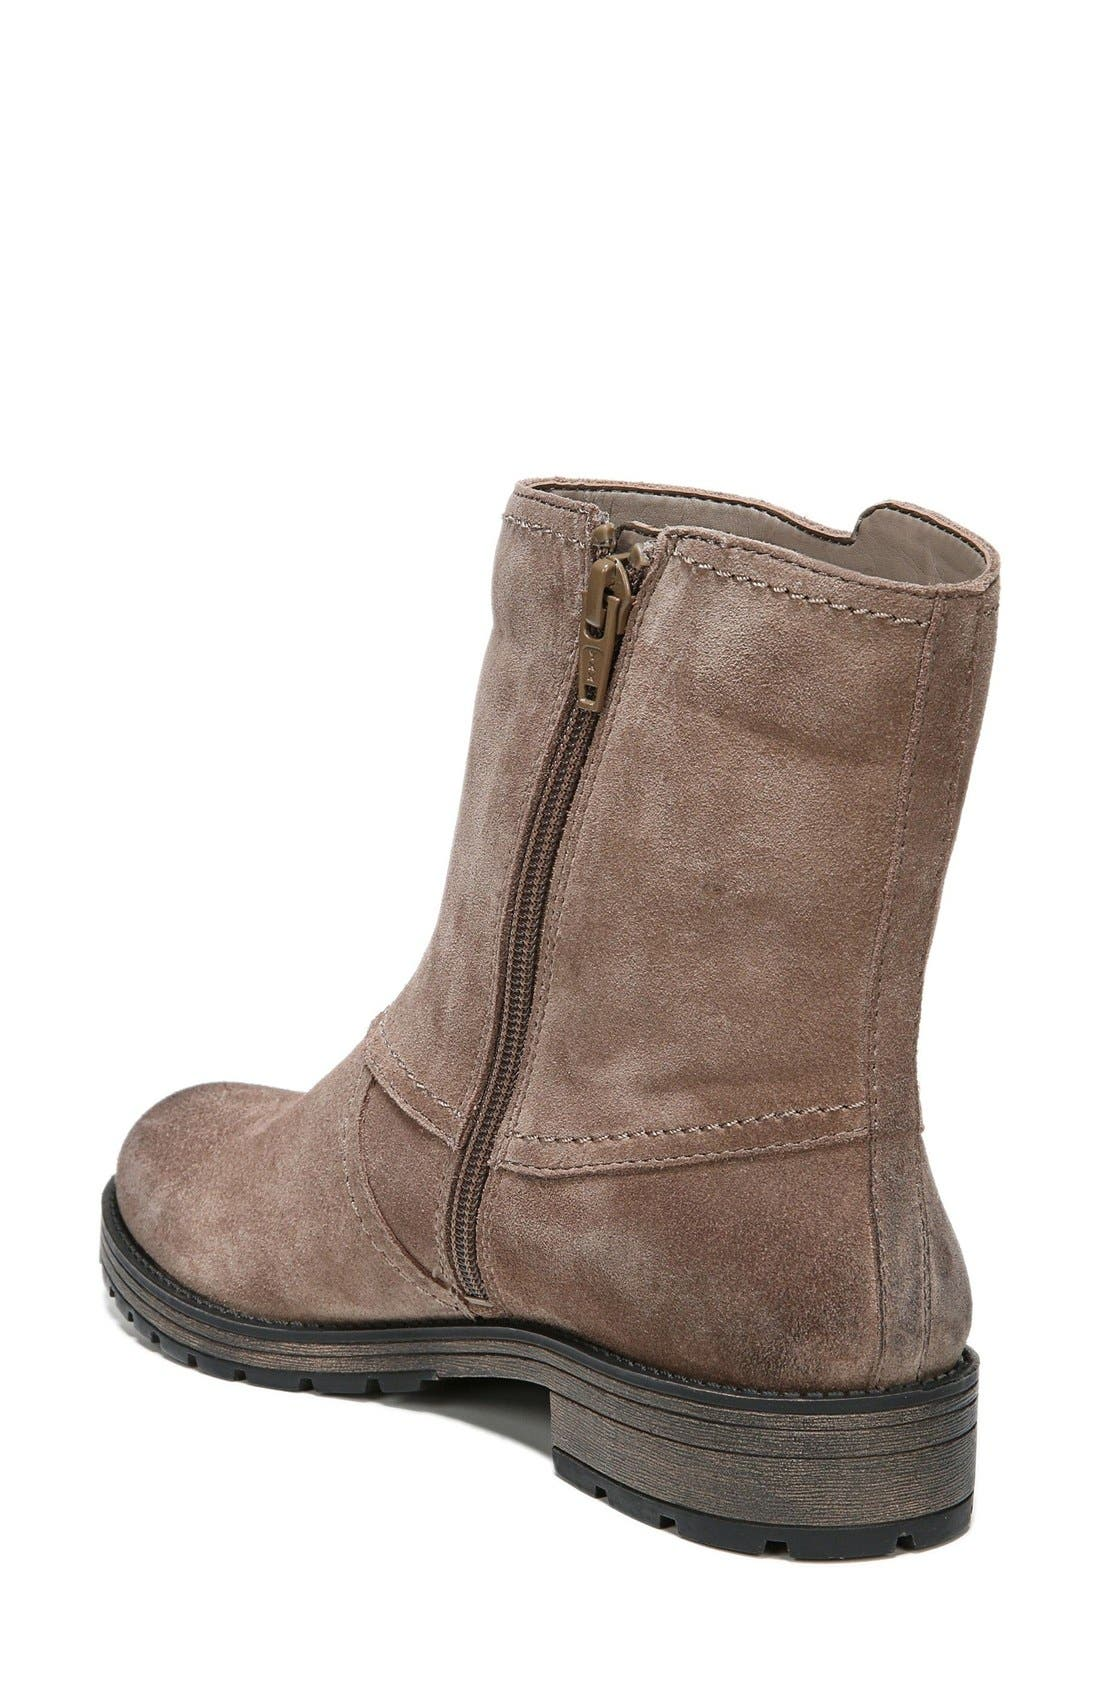 'Tynner' Boot,                             Alternate thumbnail 2, color,                             Taupe Leather